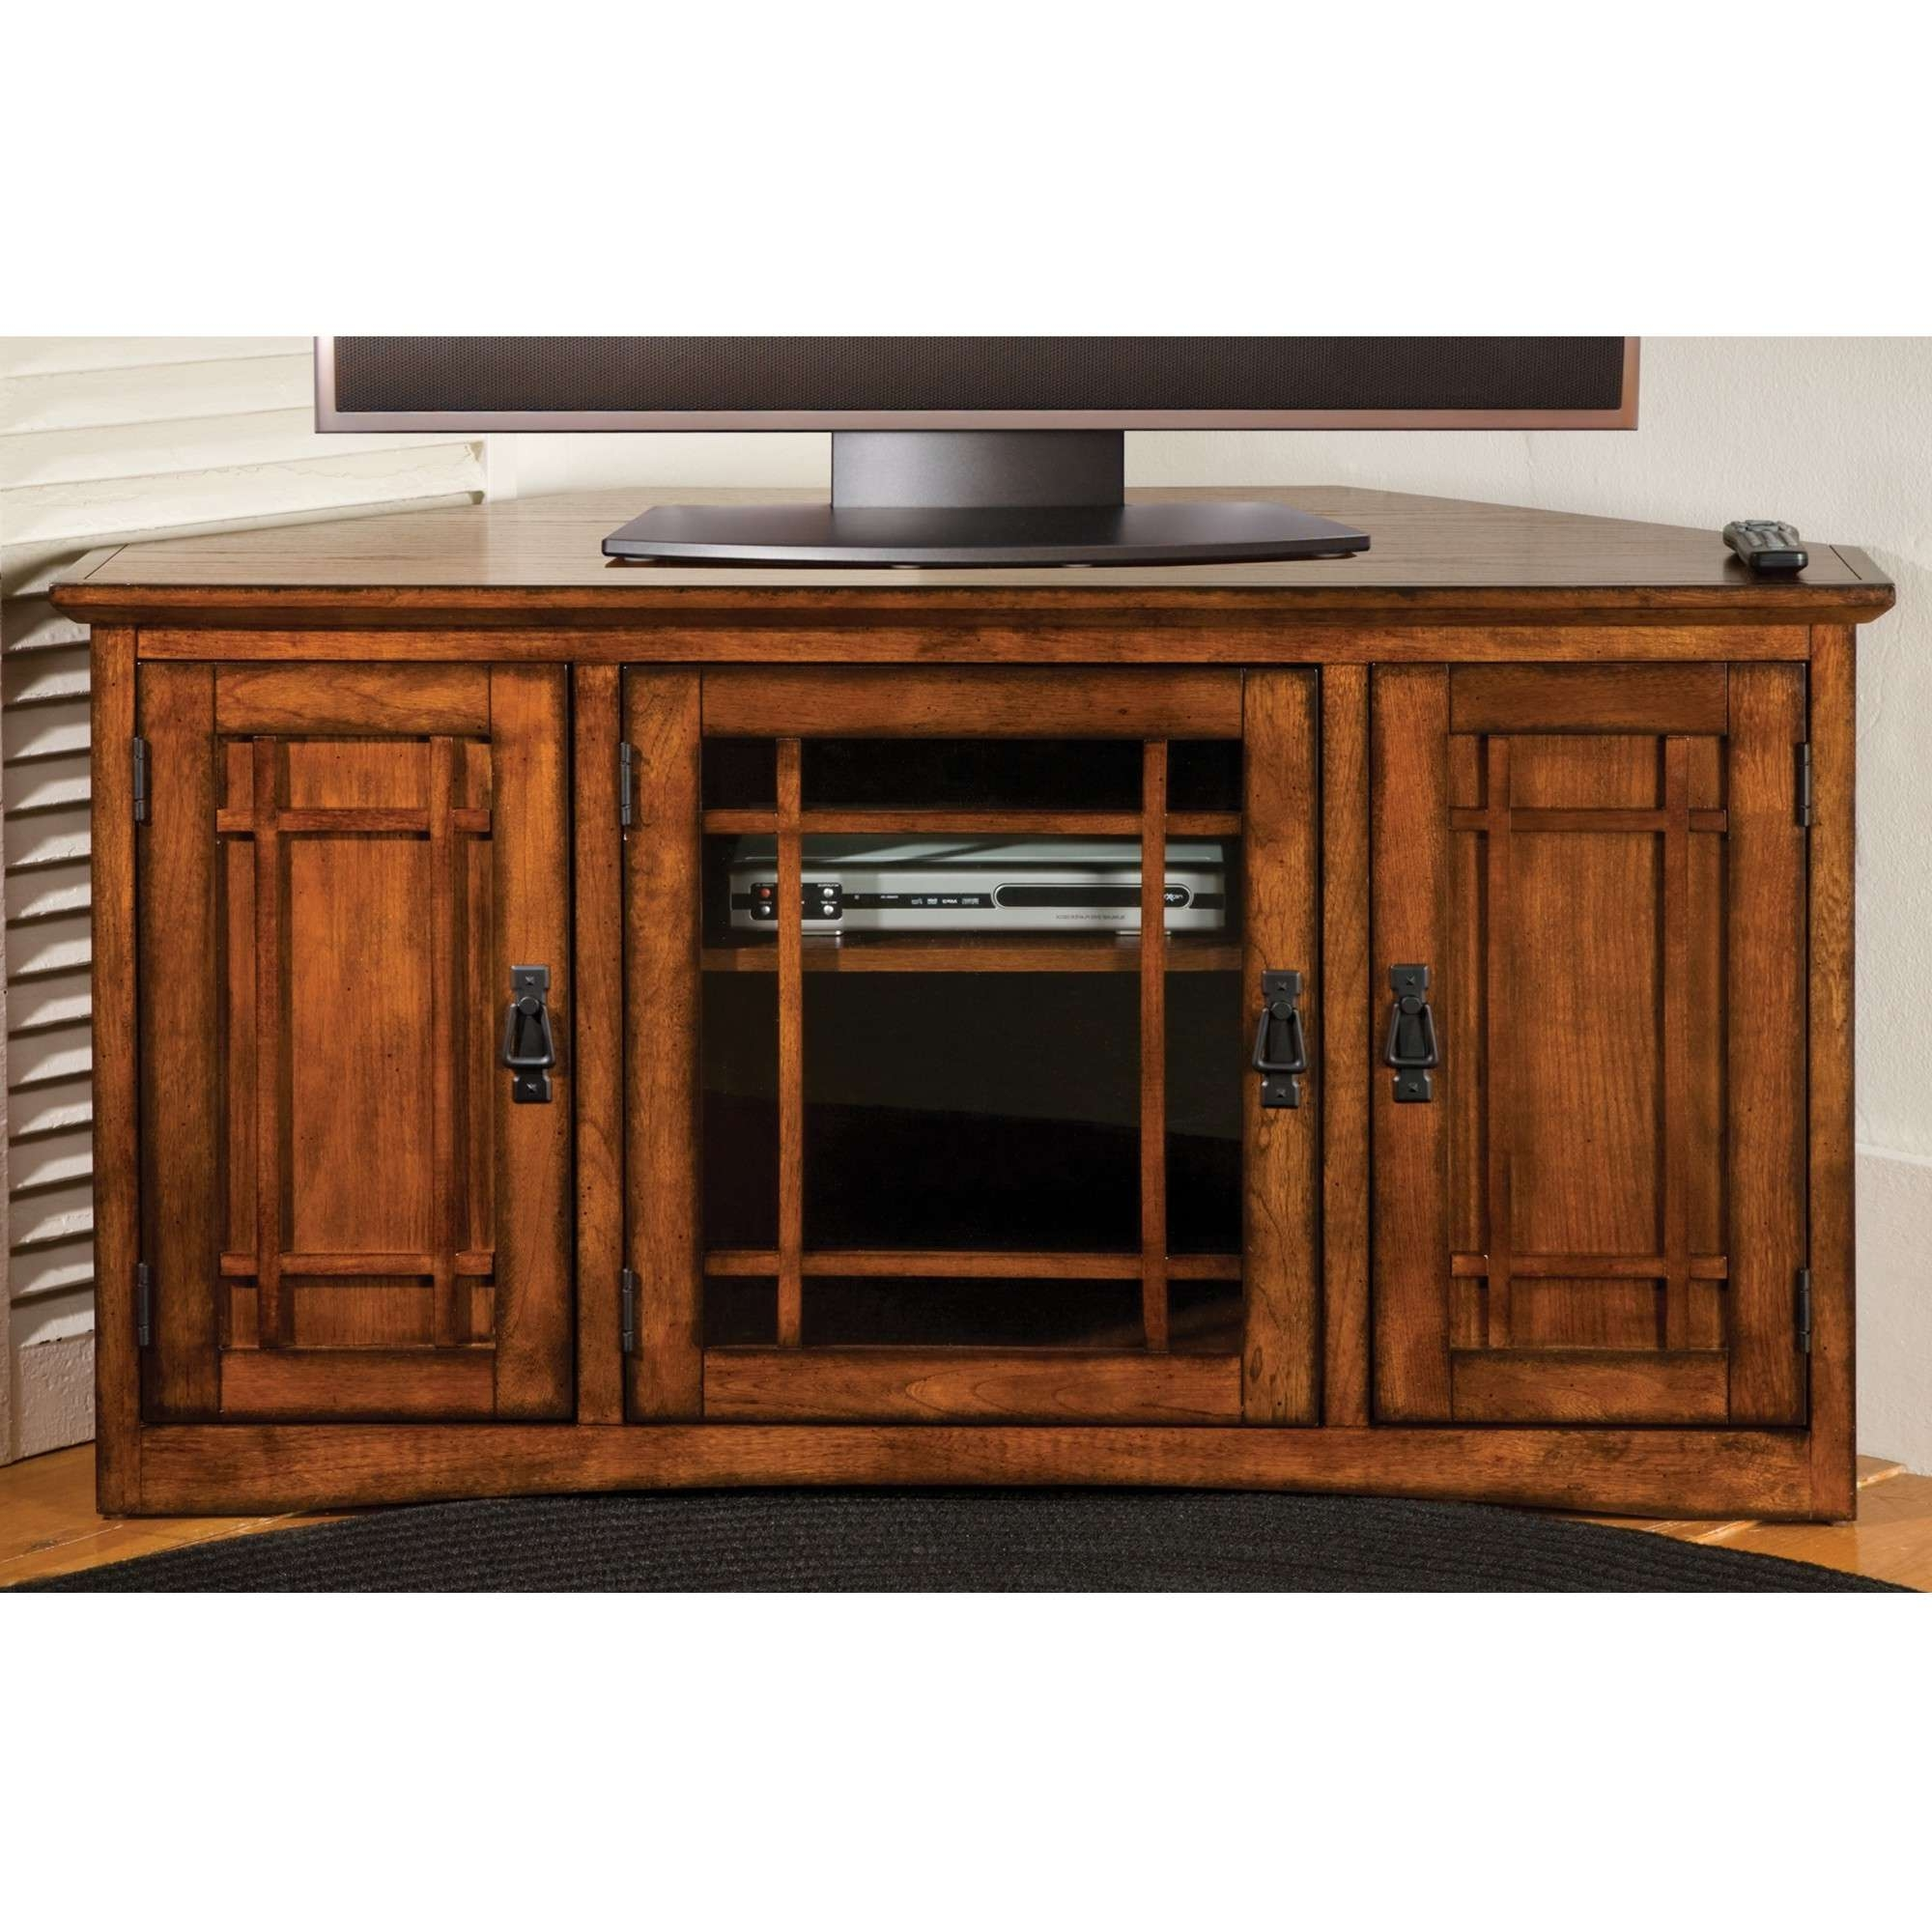 Flat Screen Tv Corner Cabinets With Doors • Cabinet Doors Pertaining To Corner Tv Cabinets For Flat Screens (View 10 of 20)